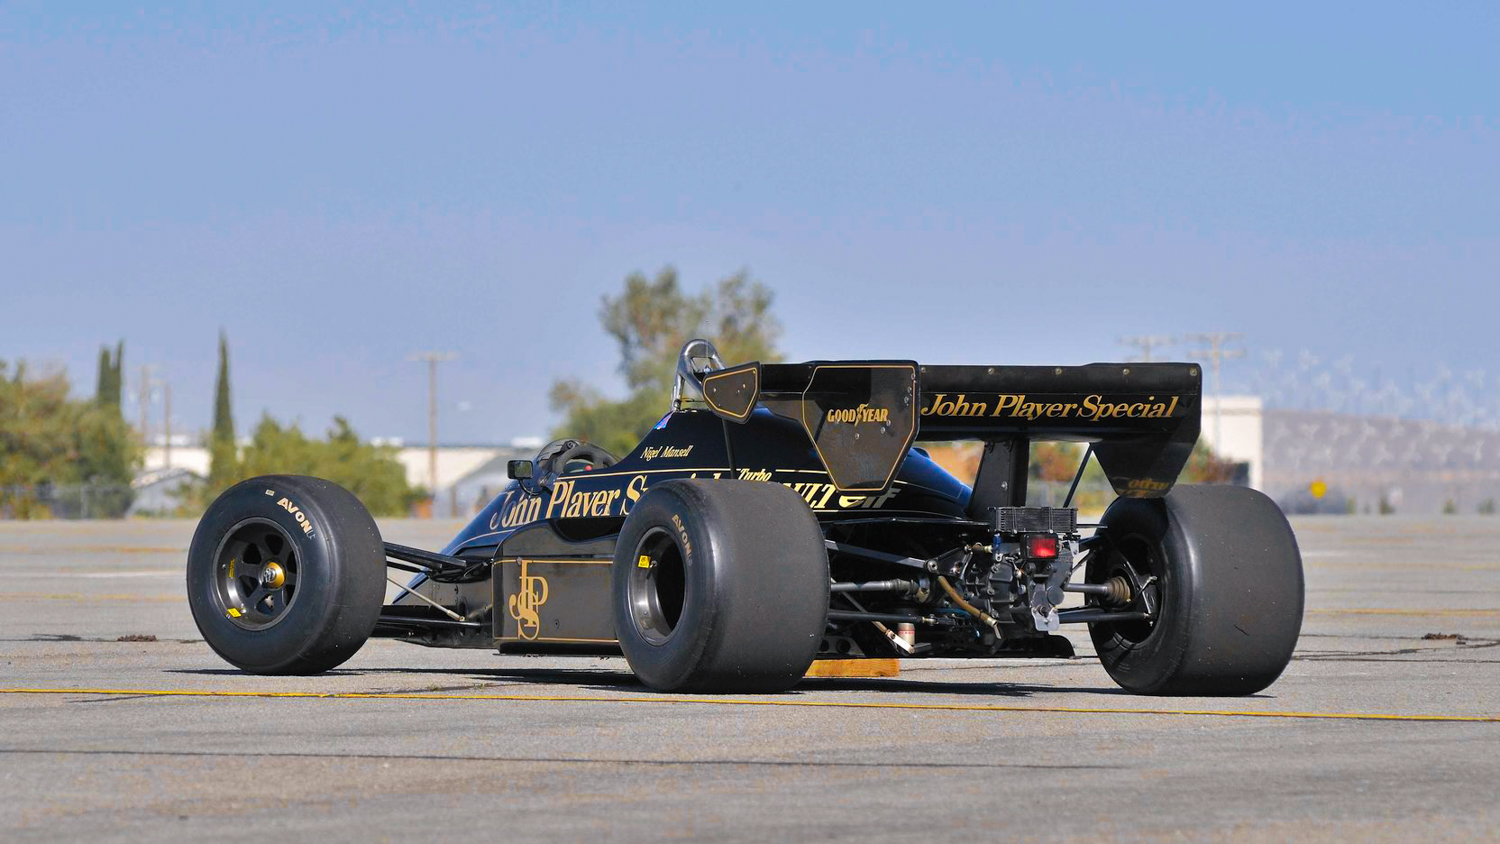 1984 Lotus Type 95T 3/4 rear john player special